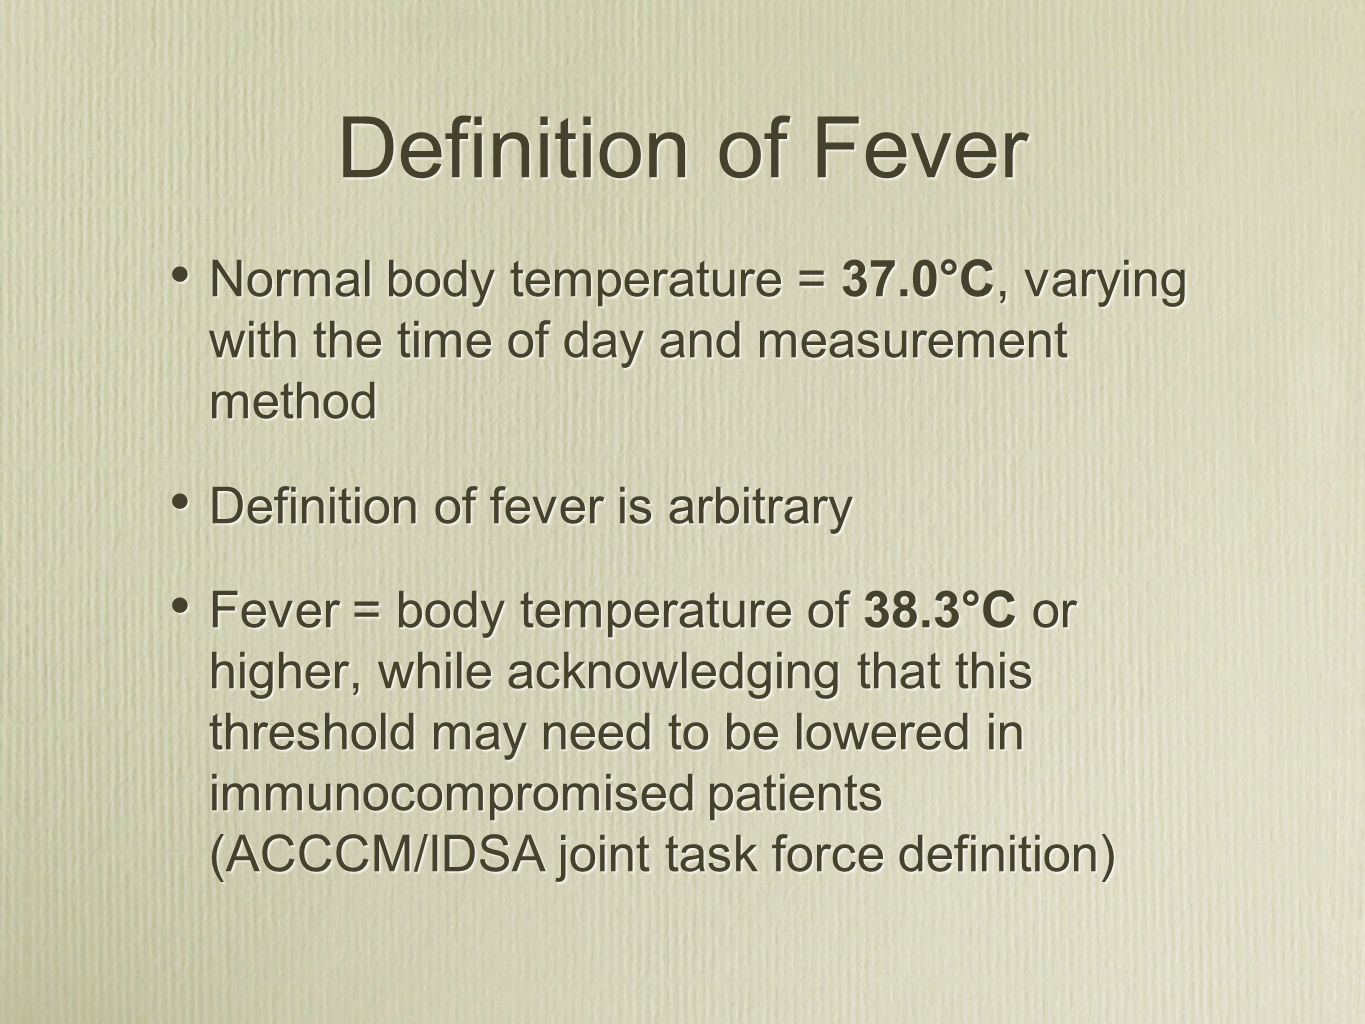 Definition of Fever Normal body temperature = 37.0°C, varying with the time of day and measurement method.